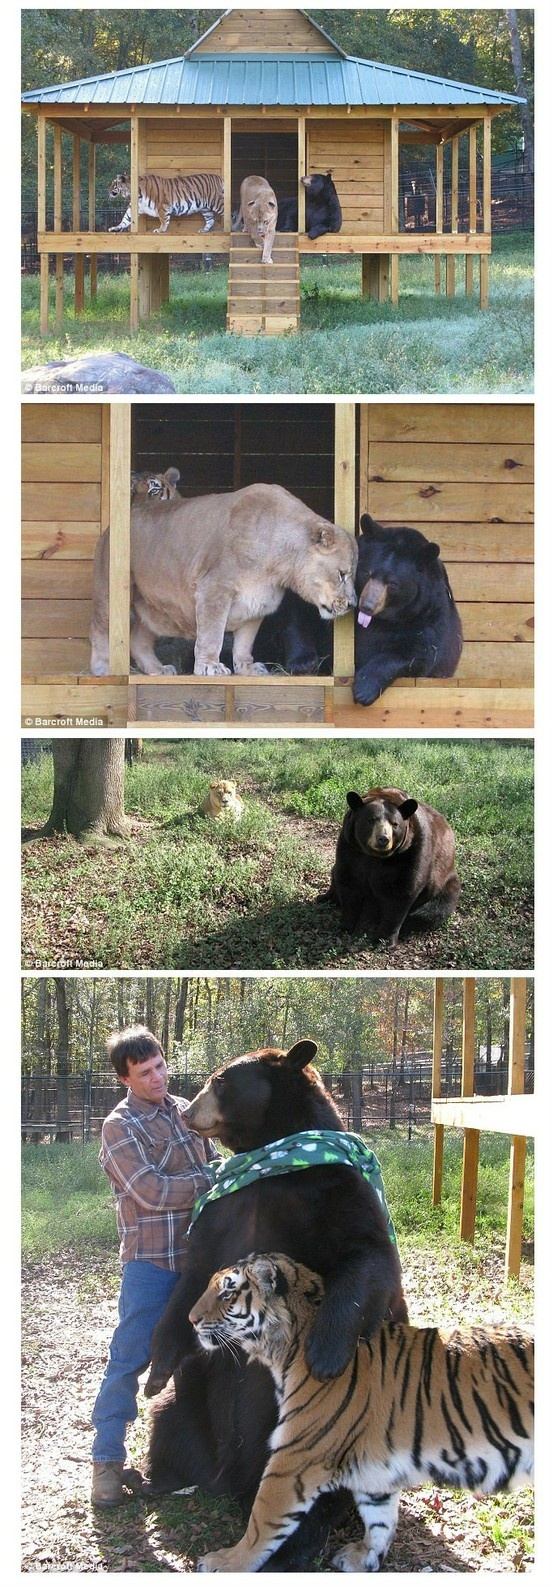 unlikely friendships BLT (bear lion tiger) at Noah's ark a place many animals call home.